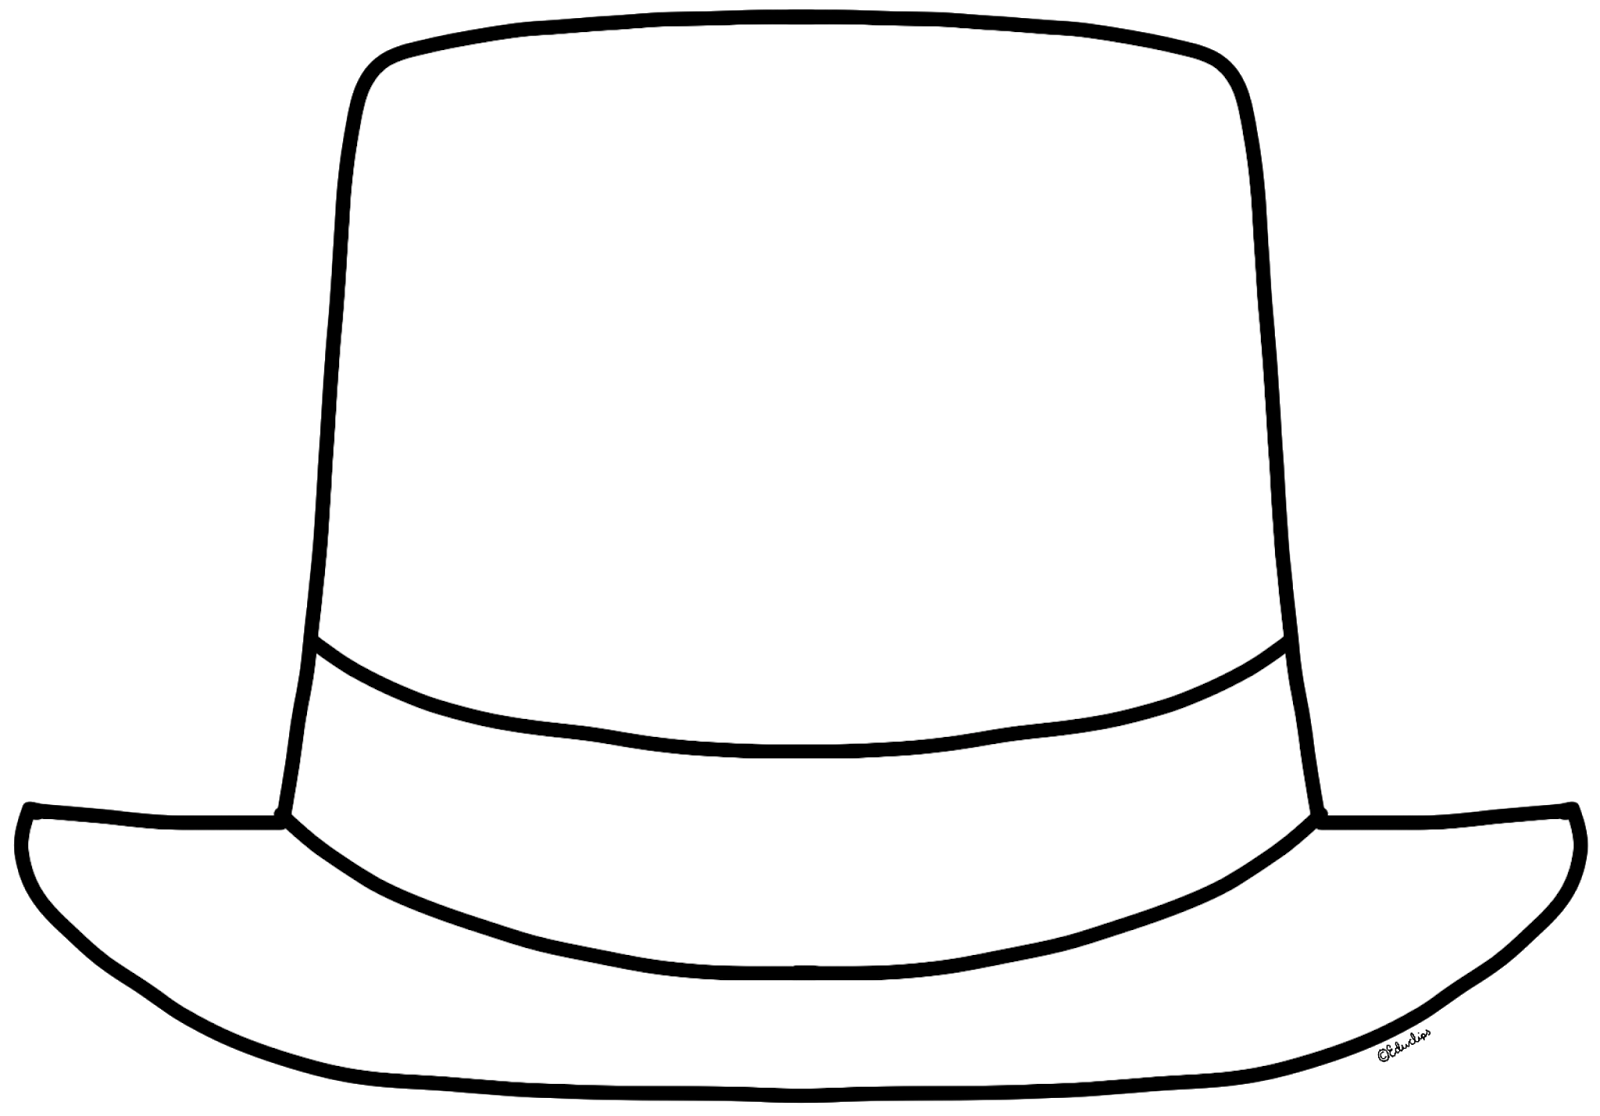 Free Top Hat Pictures, Download Free Clip Art, Free Clip Art.